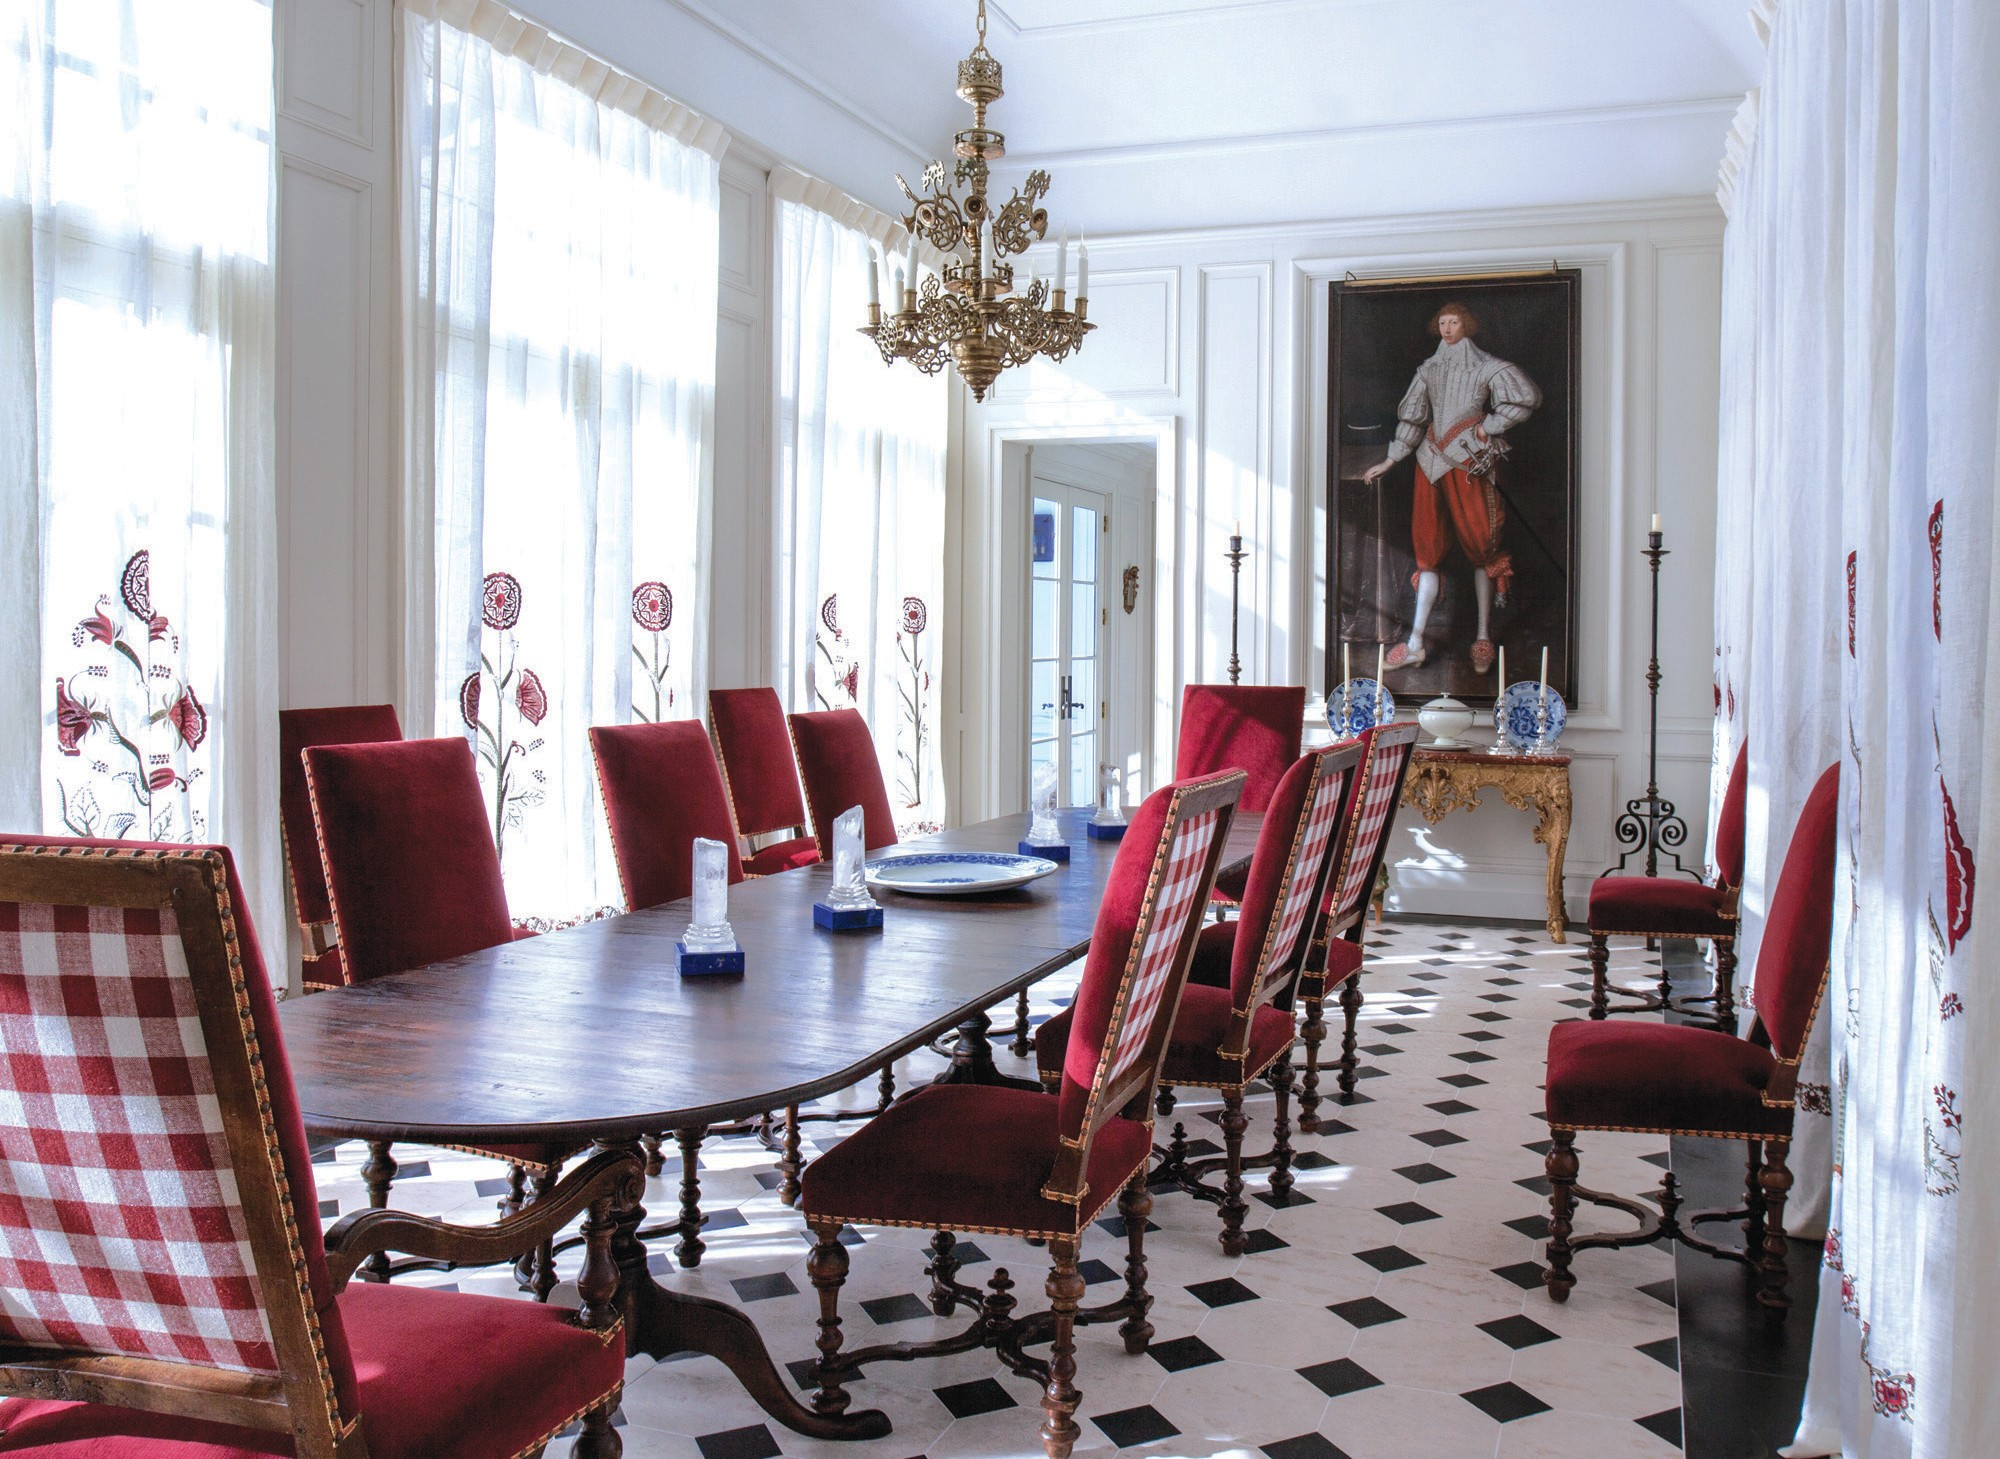 A dining room fit for royalty is right at home in this modern palace.